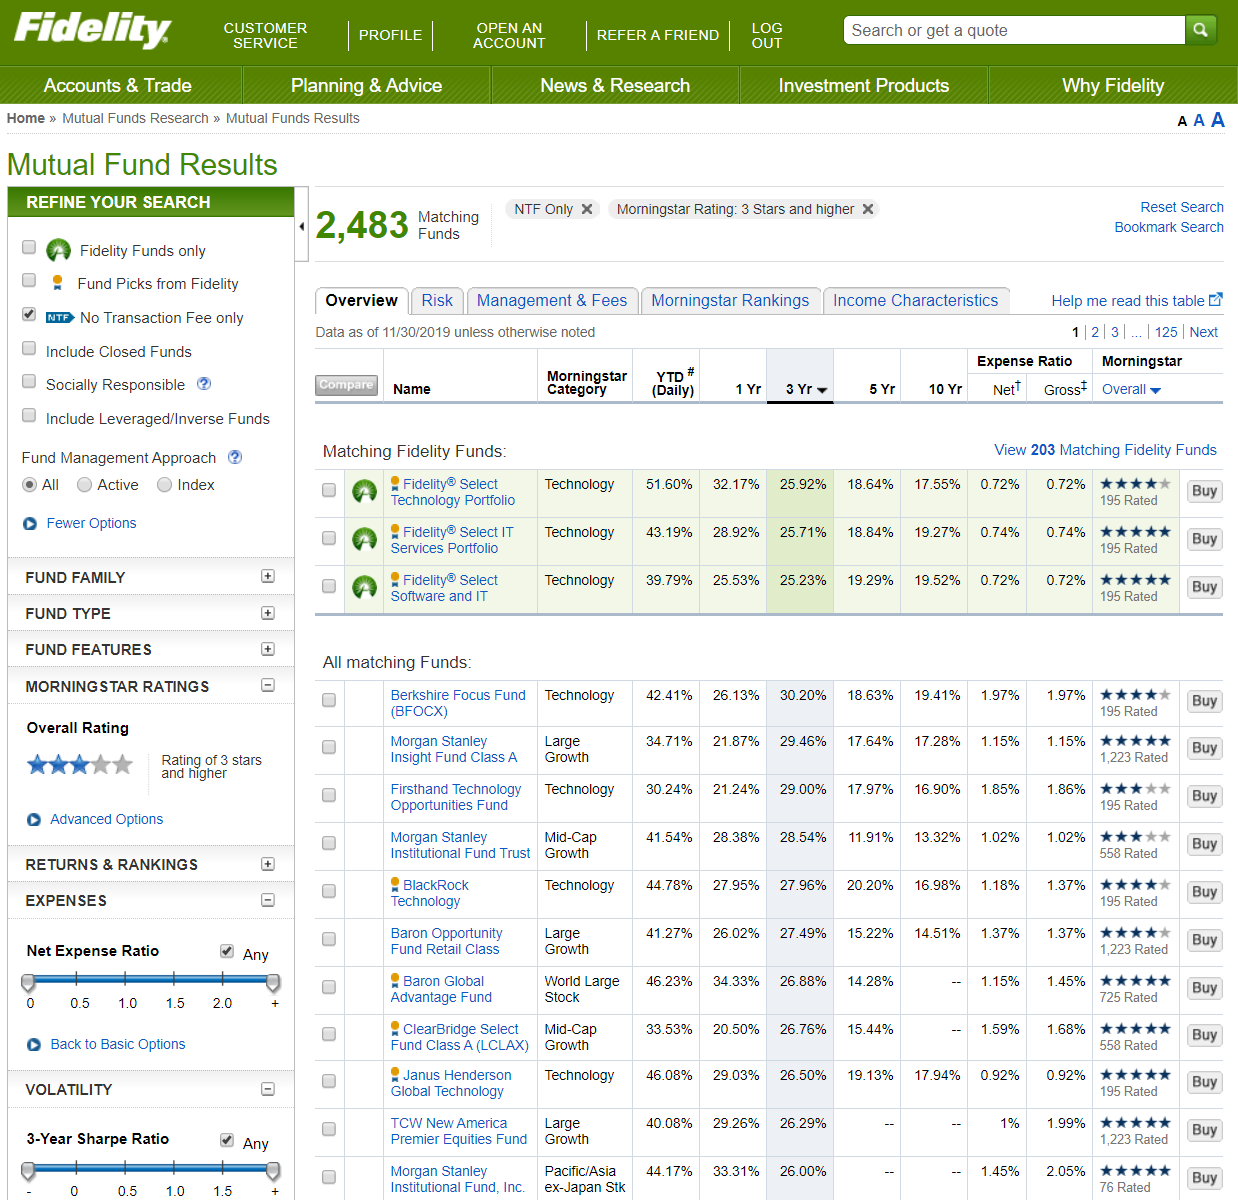 Fidelity Mutual Funds Investing Review